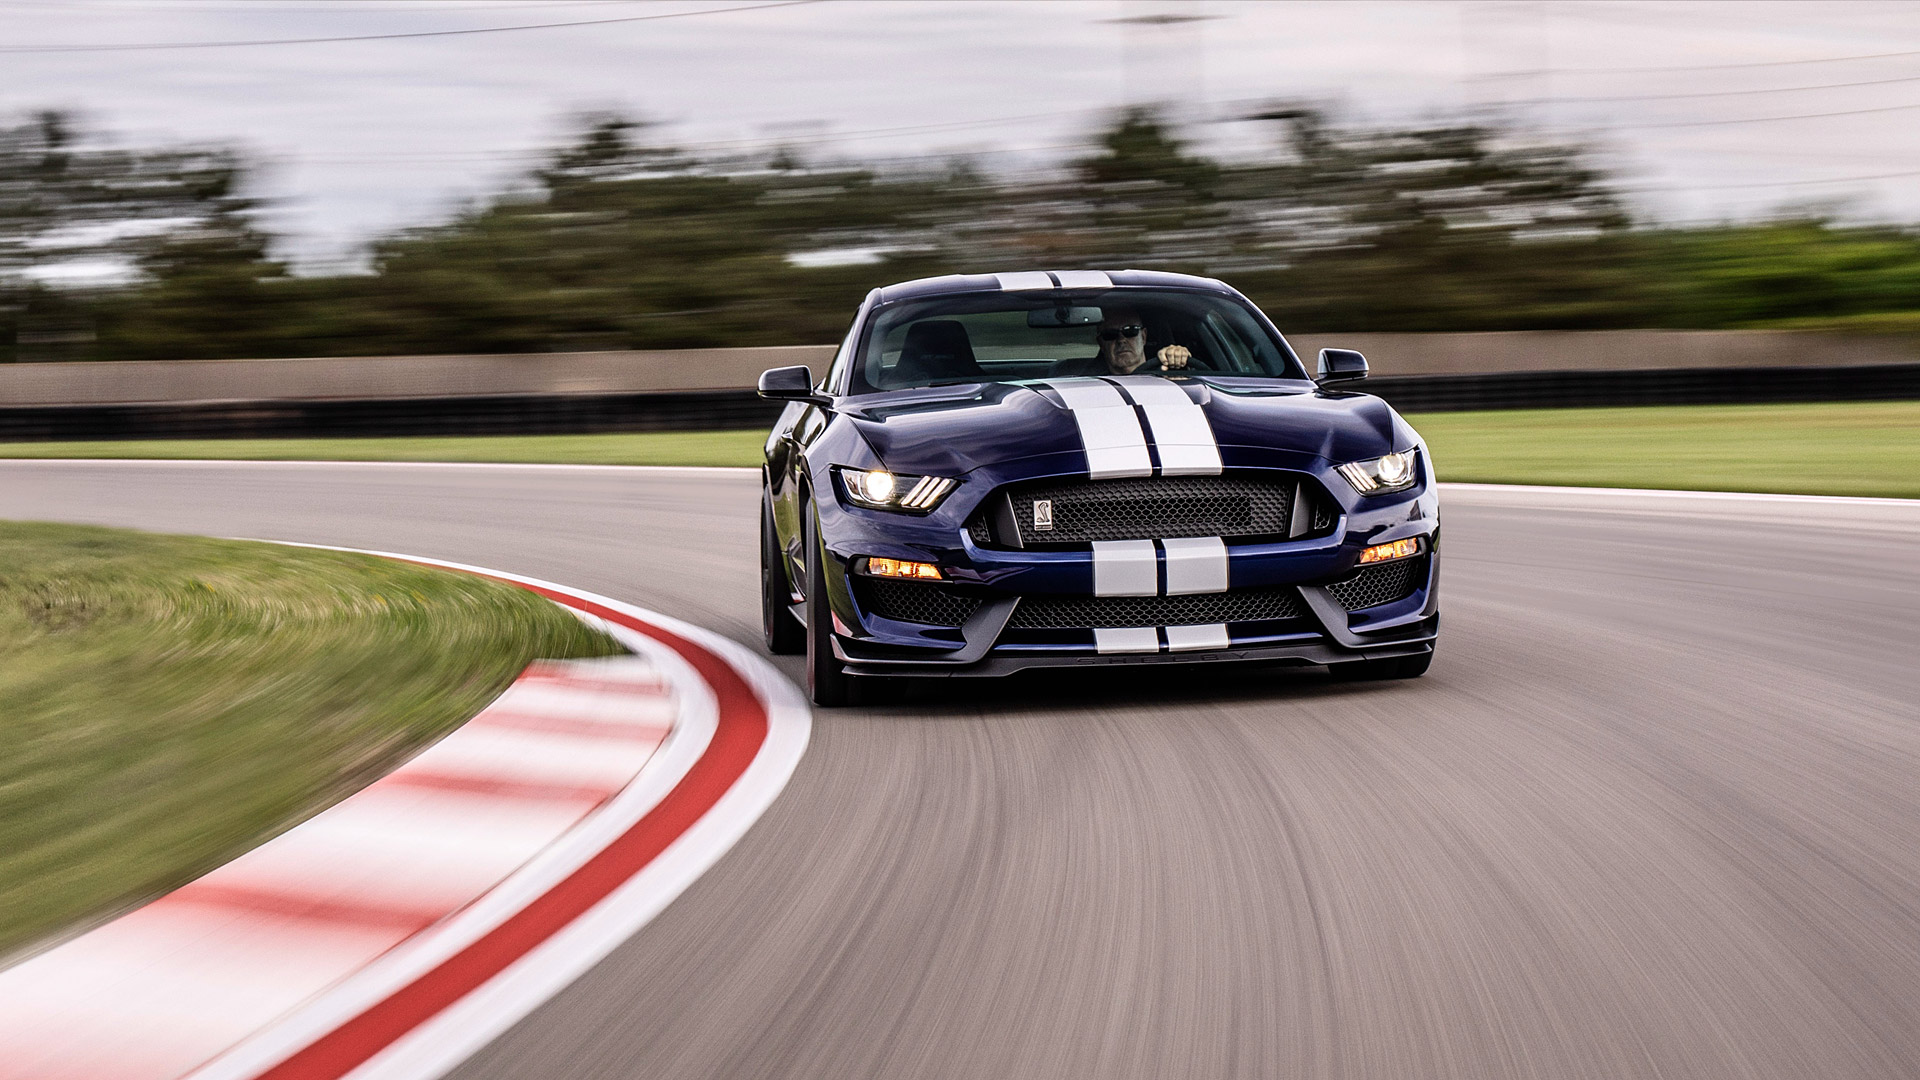 1920x1080 - Shelby Mustang GT 350 Wallpapers 21